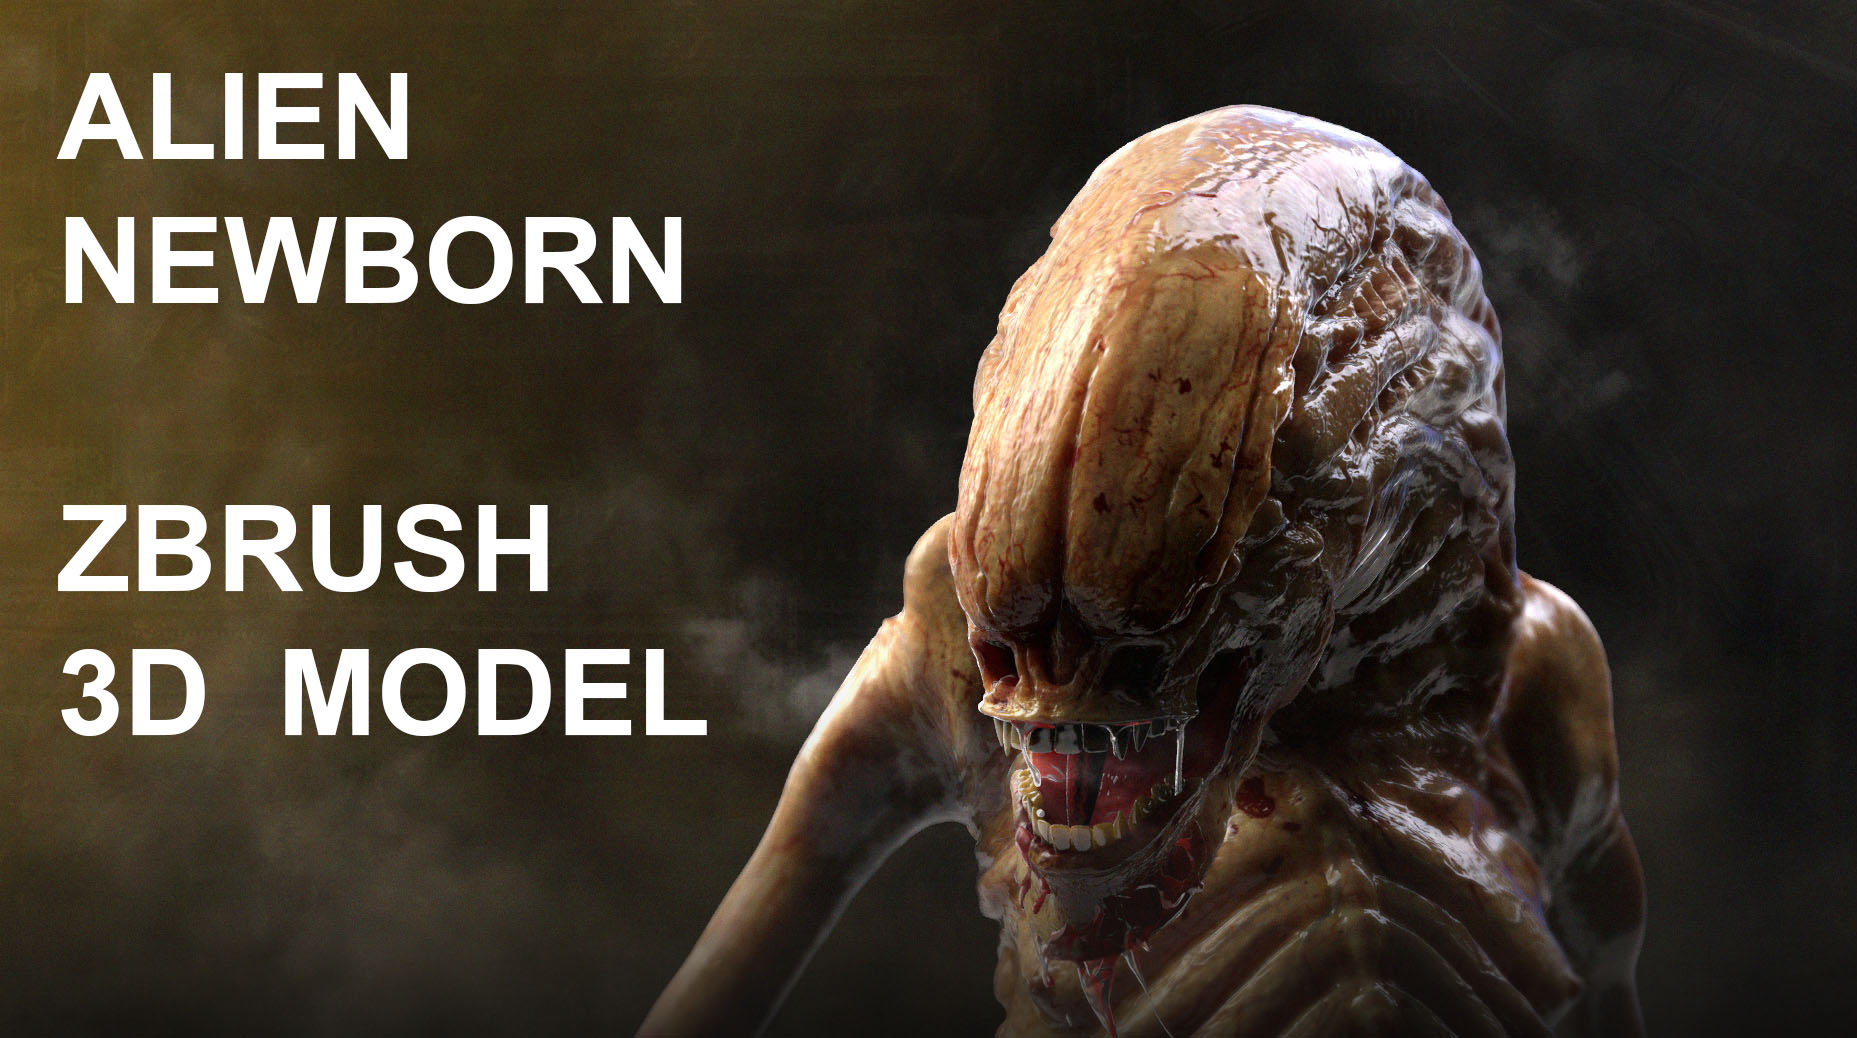 Alien Newborn Concept Design